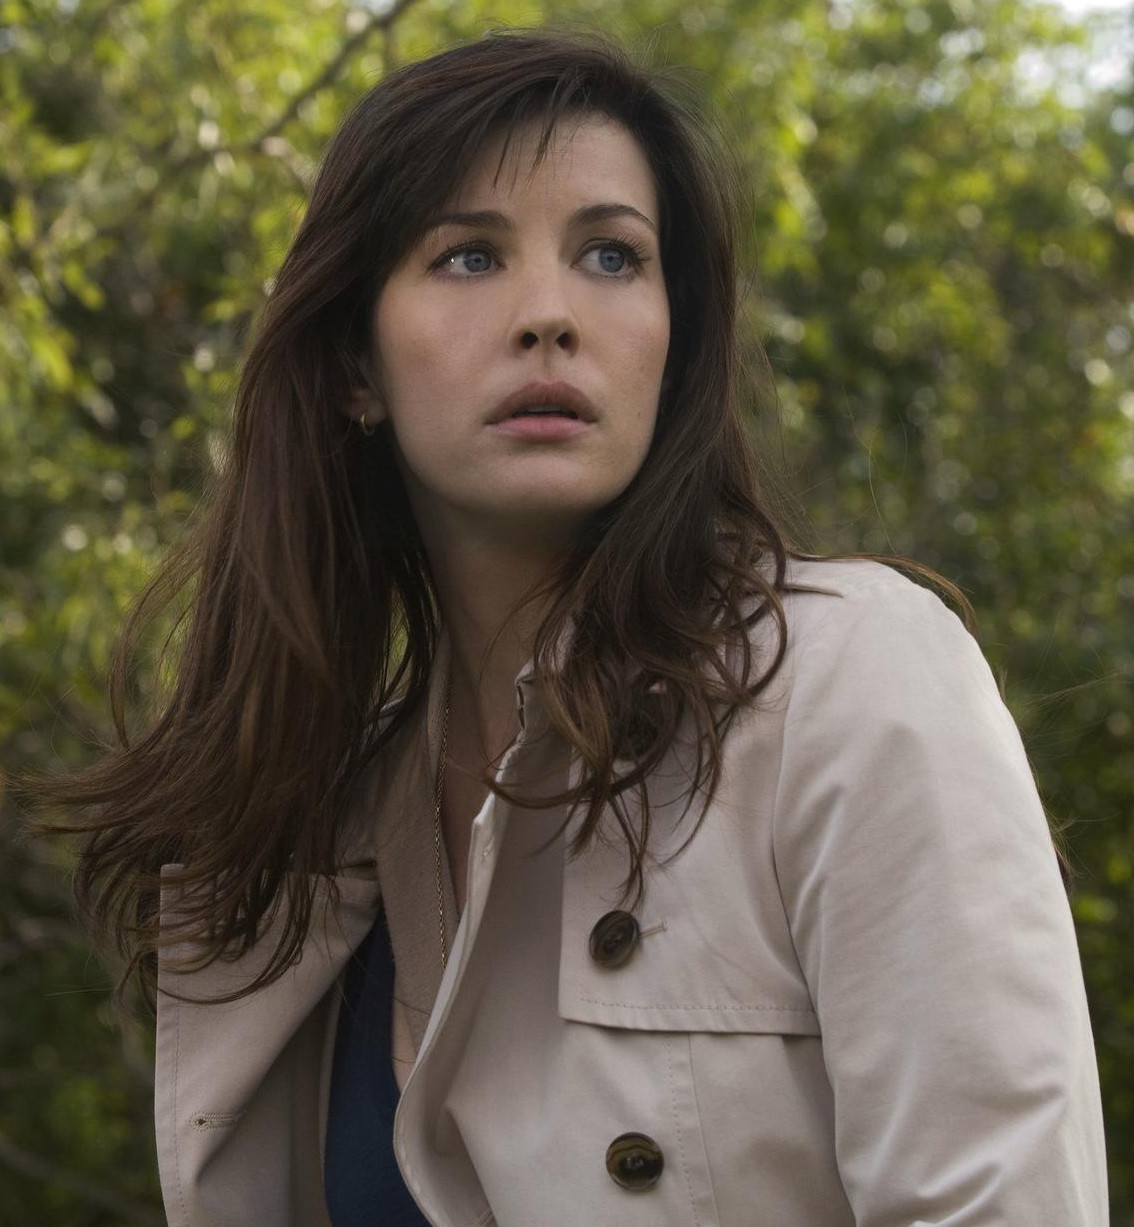 http://vignette1.wikia.nocookie.net/disney/images/0/0a/Betty_Ross_Incredible_Hulk.jpg/revision/latest?cb=20150323024329